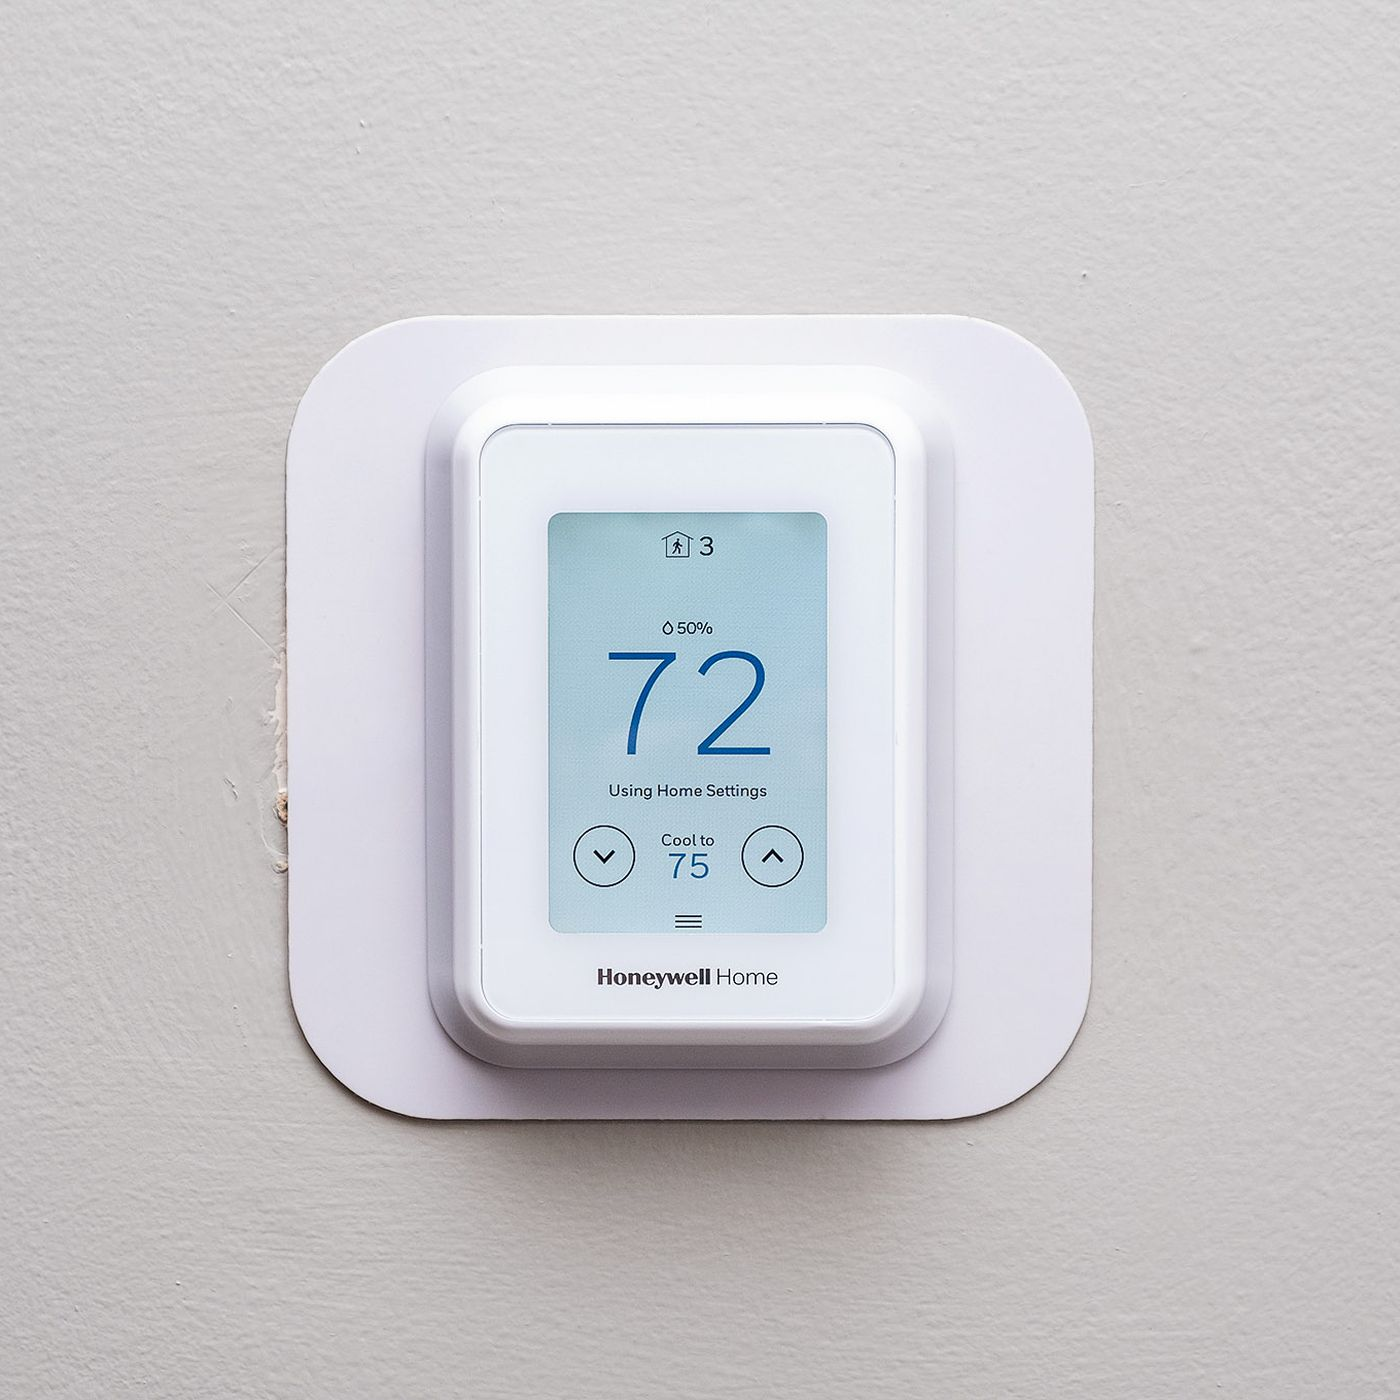 Honeywell Home T9 Thermostat Review Smart Sensors Frustrating Limitations The Verge